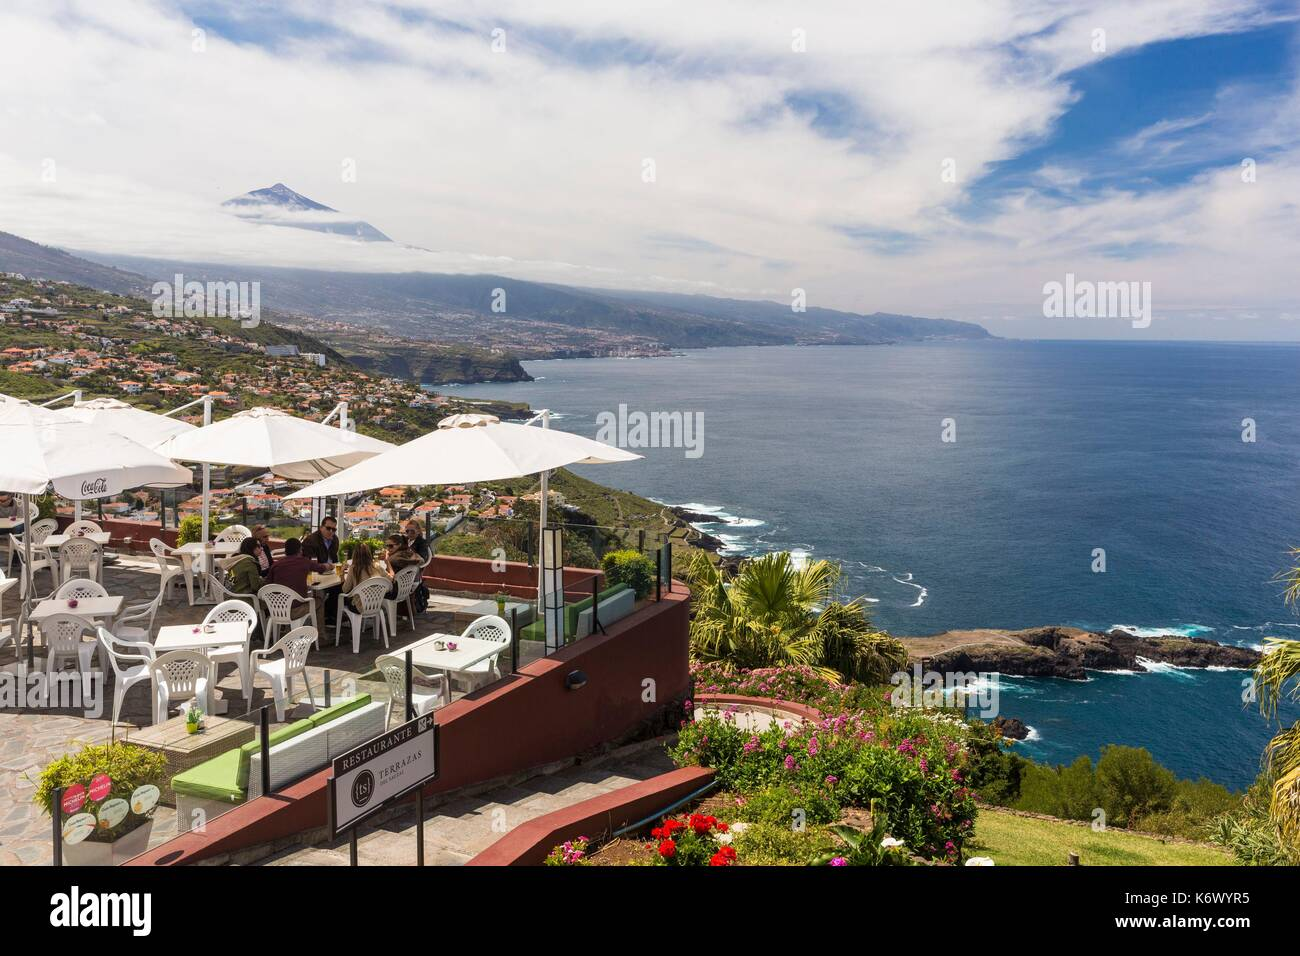 Spain Canary Islands Tenerife Island El Sauzal Terrace